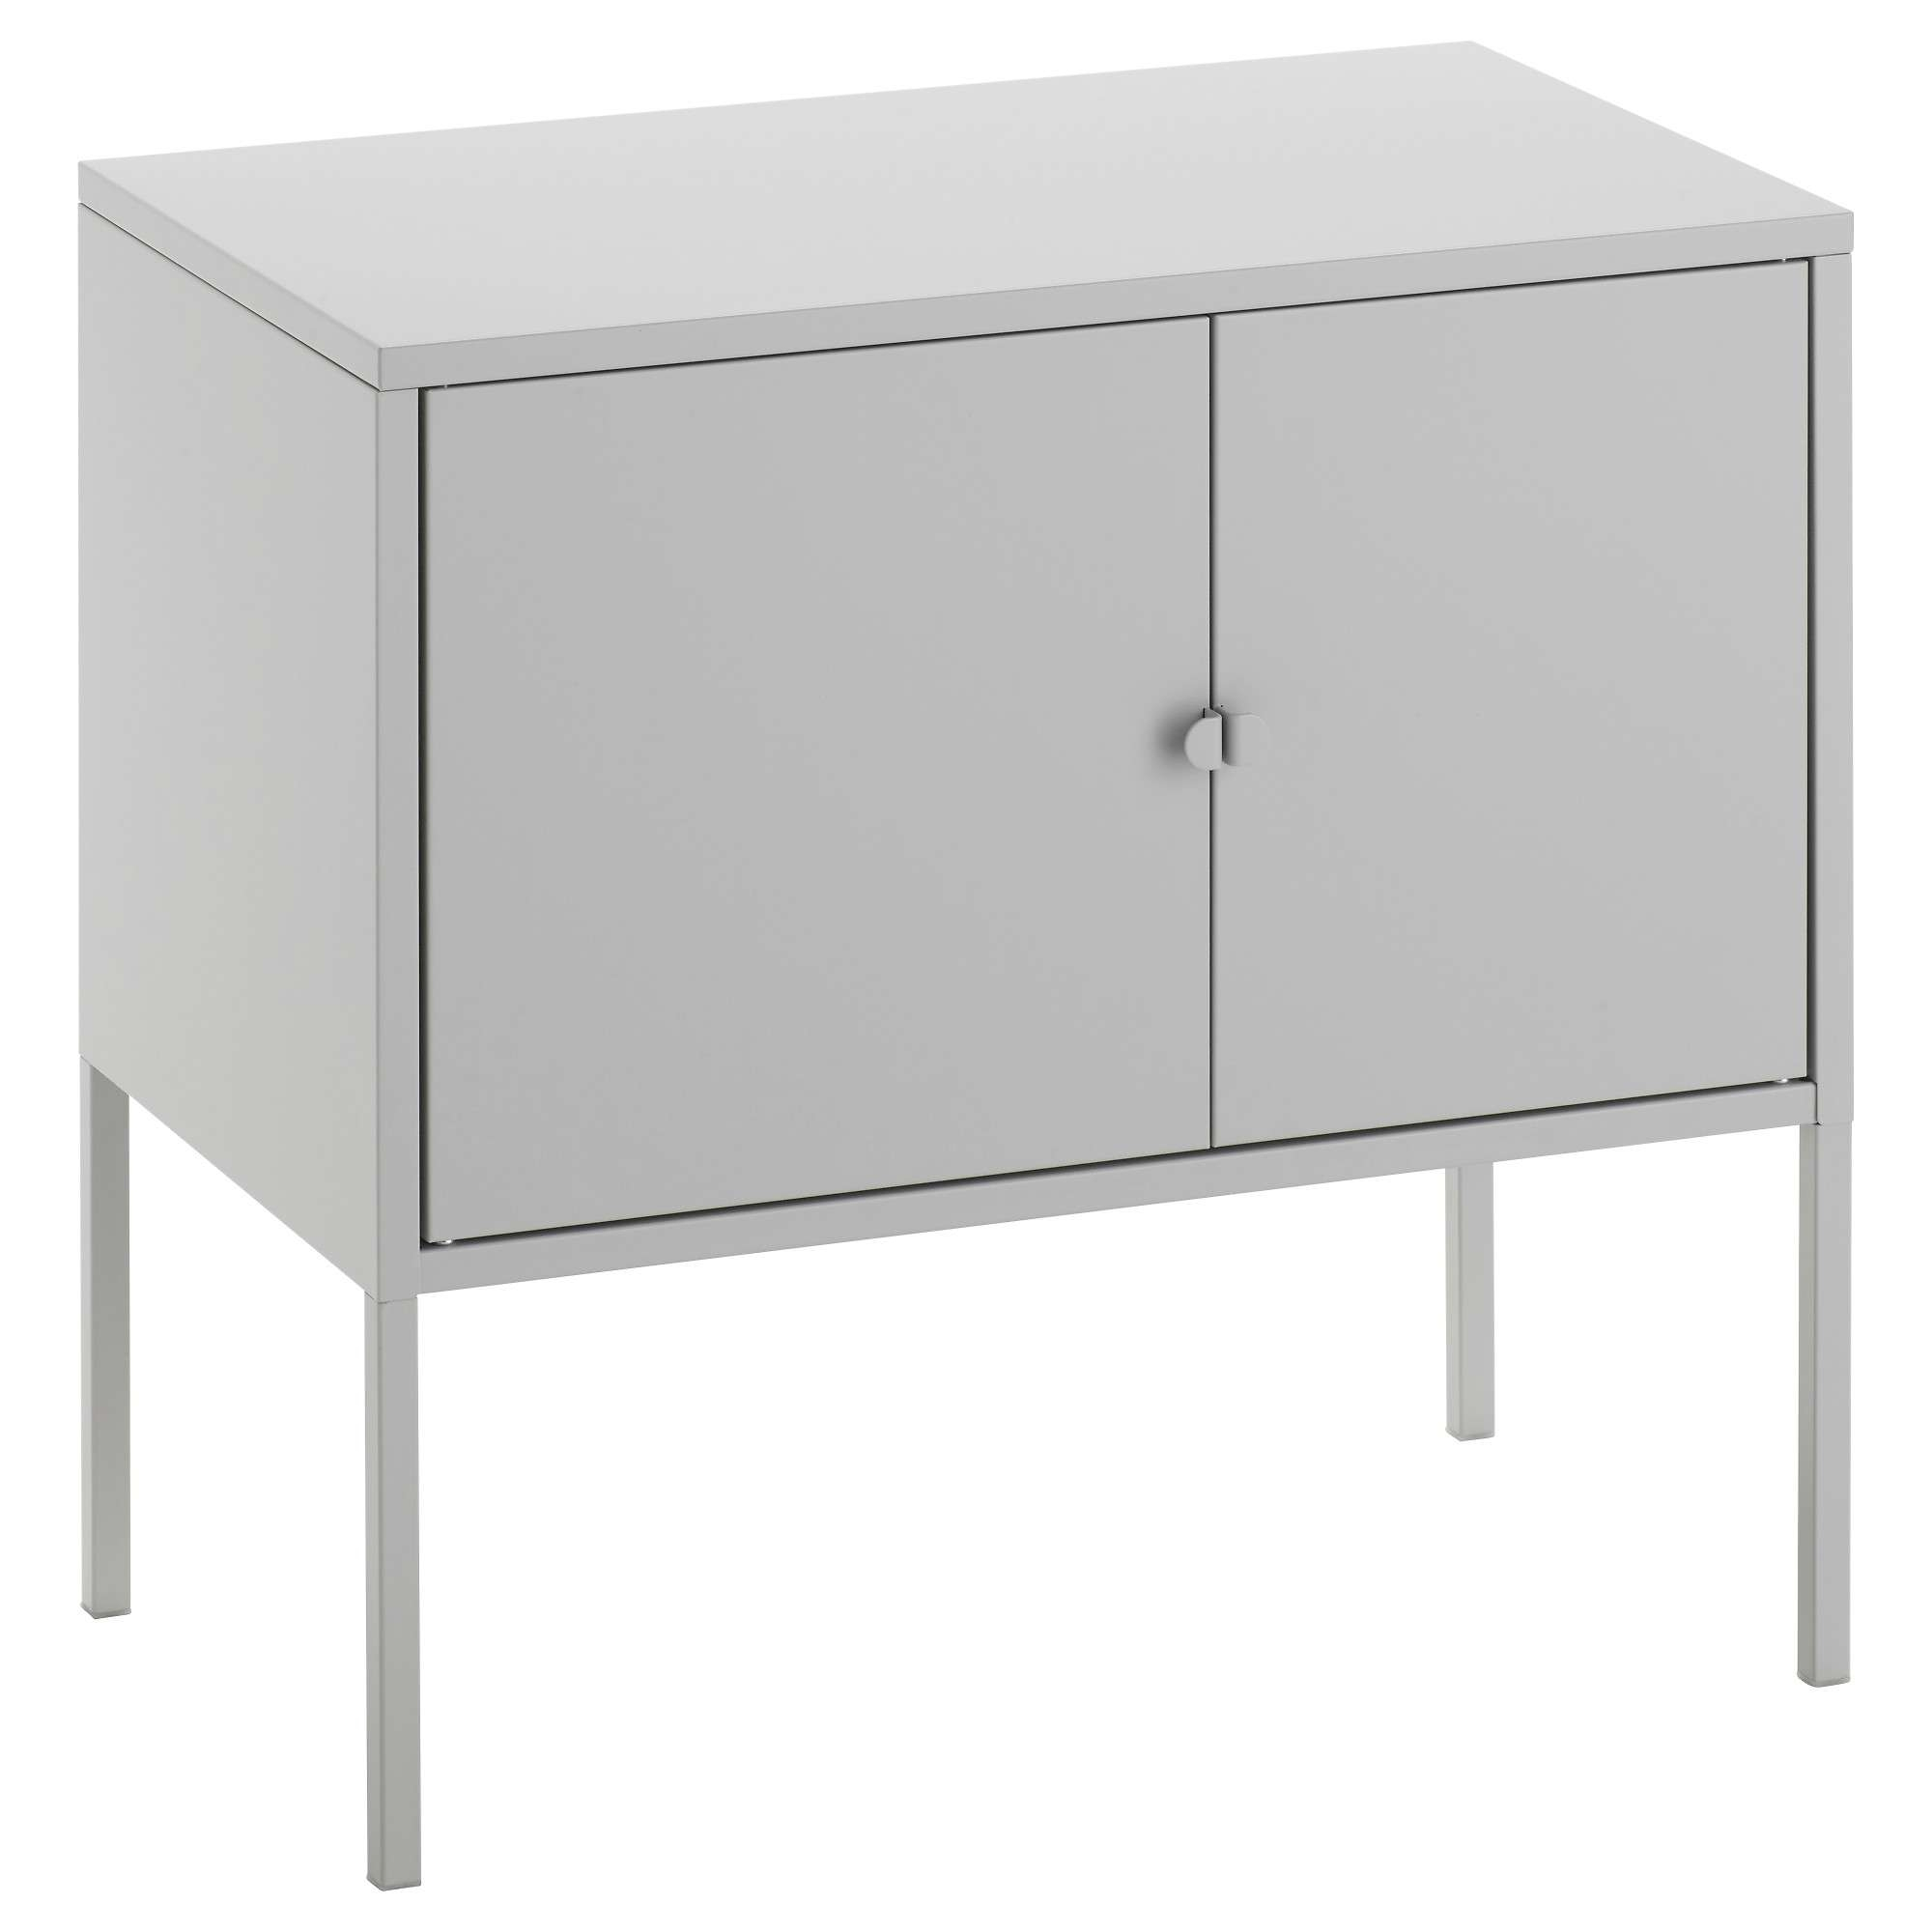 Cabinets & Sideboards – Ikea Pertaining To Deep Sideboards (View 7 of 20)